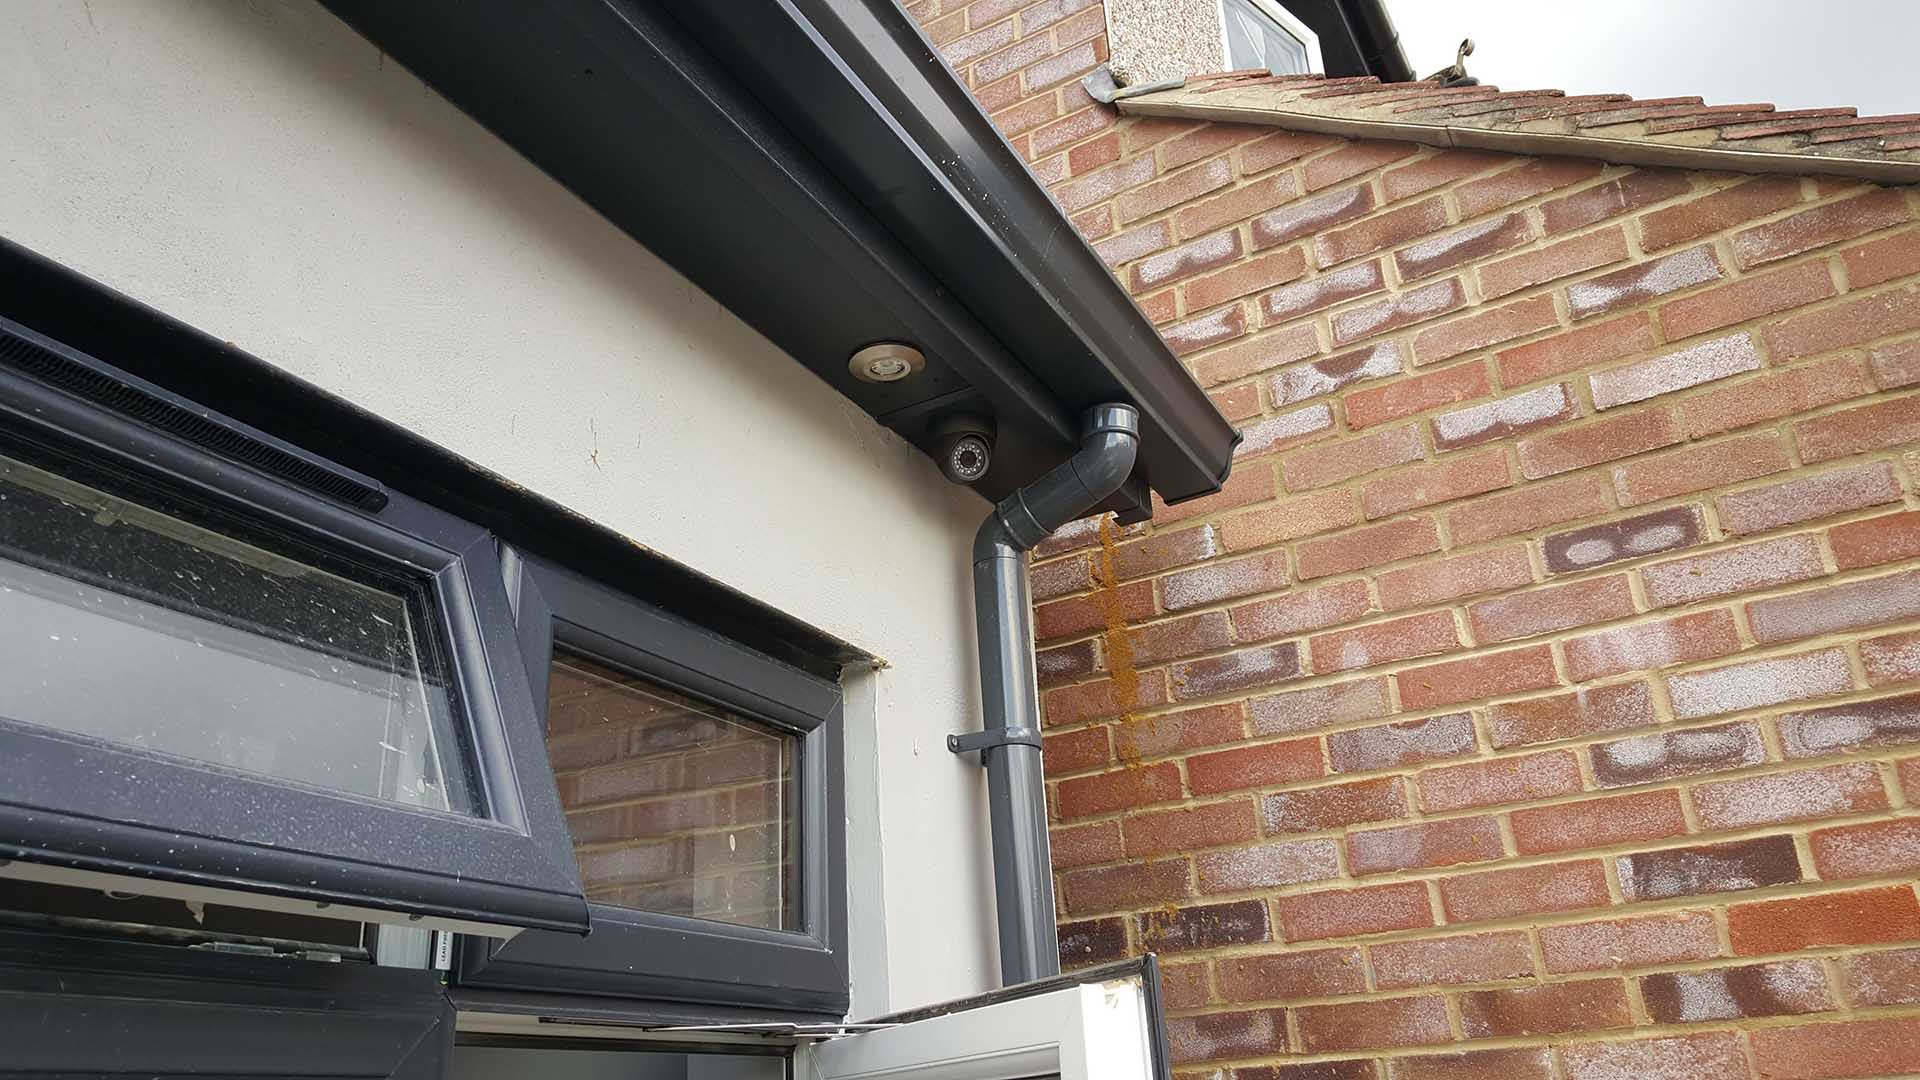 CCTV Installation in Clayhall